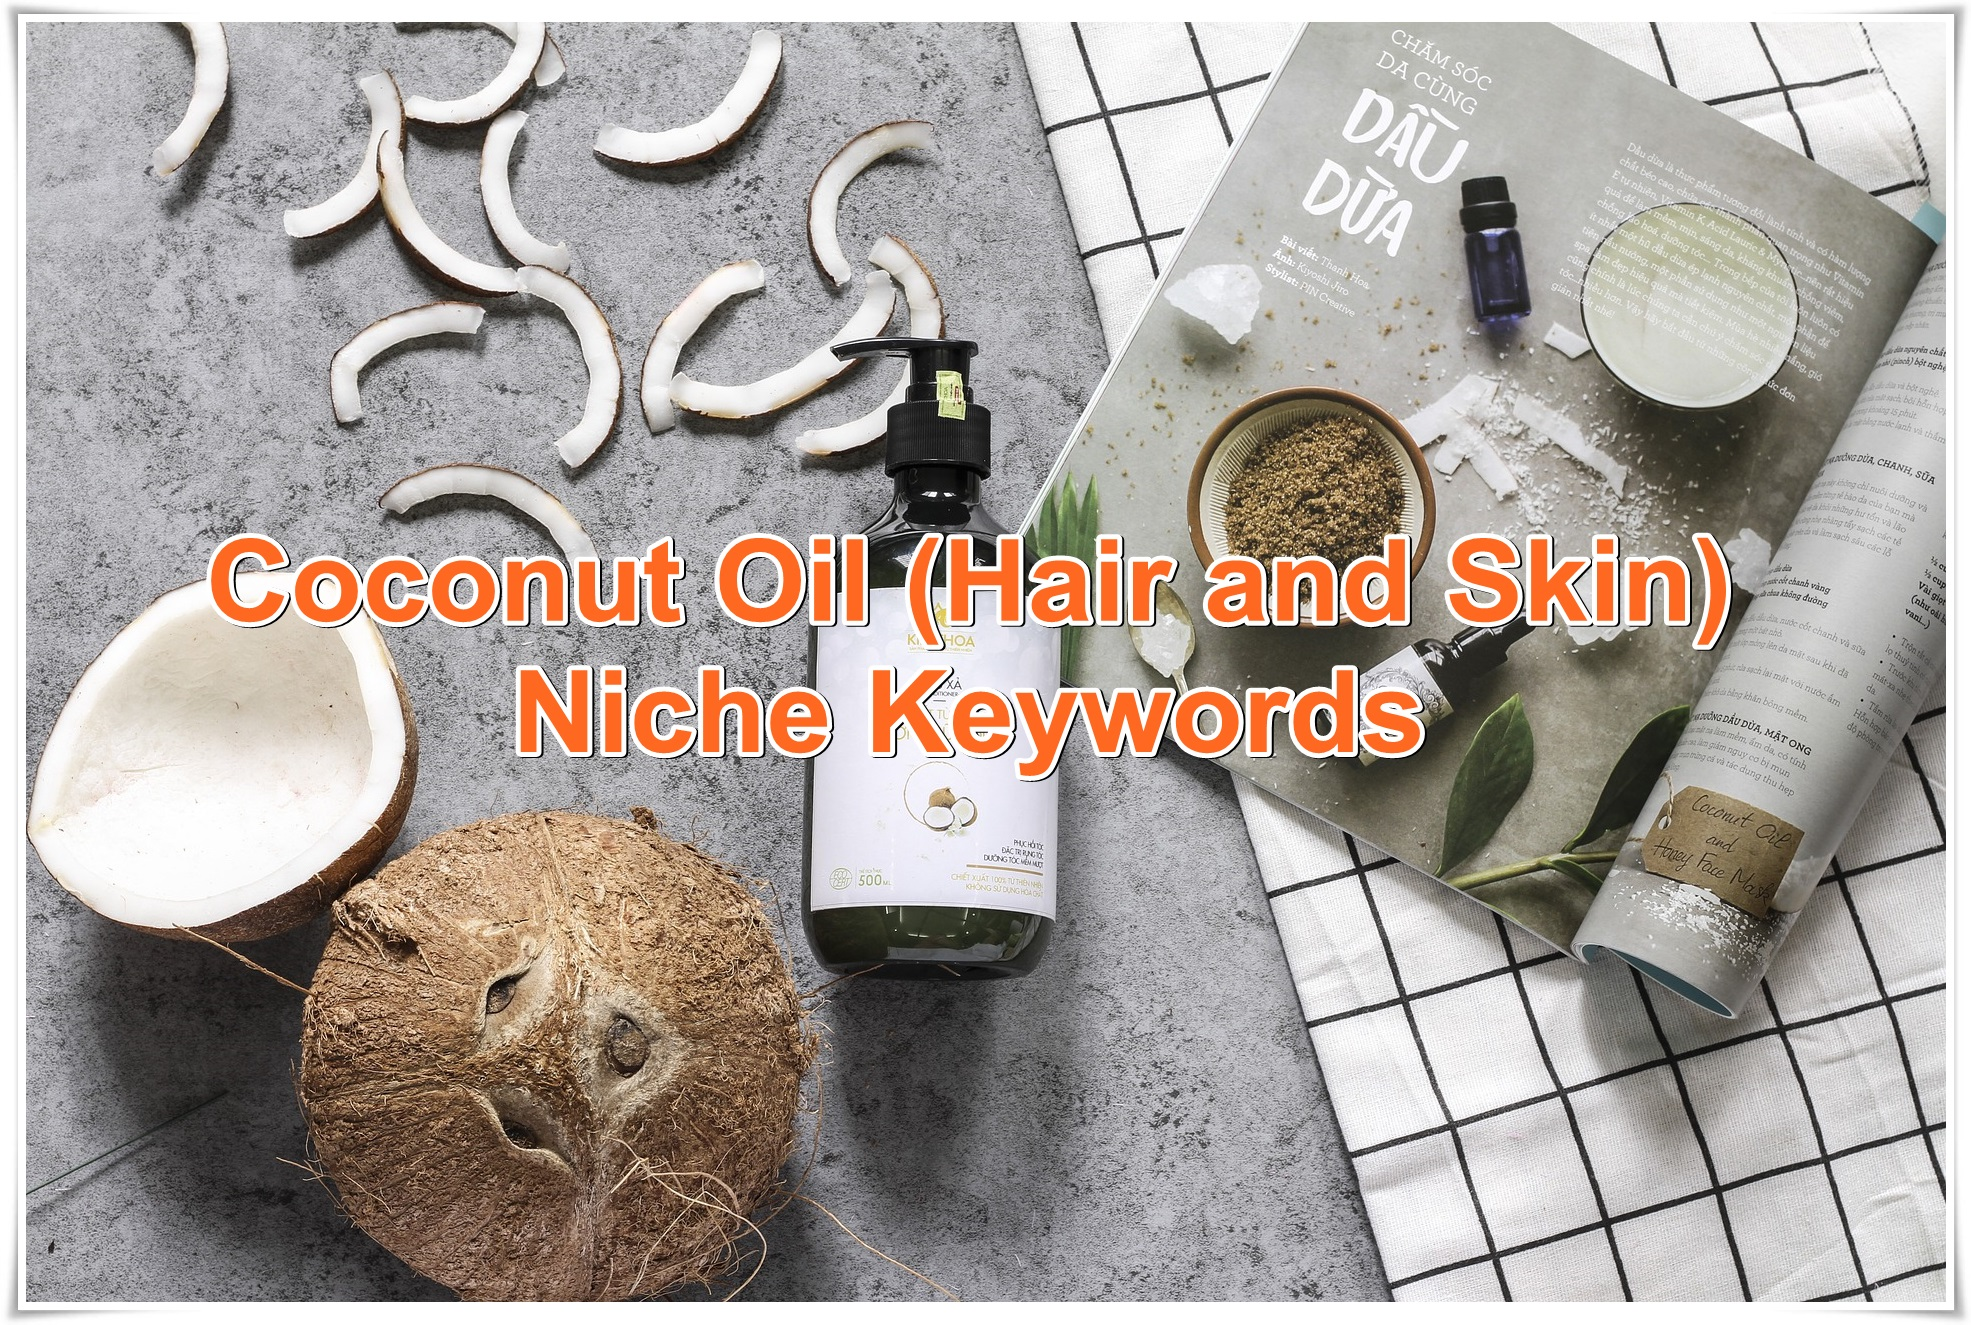 Niche keywords research Coconut Oil Hair and Skin 2020 Instant Download